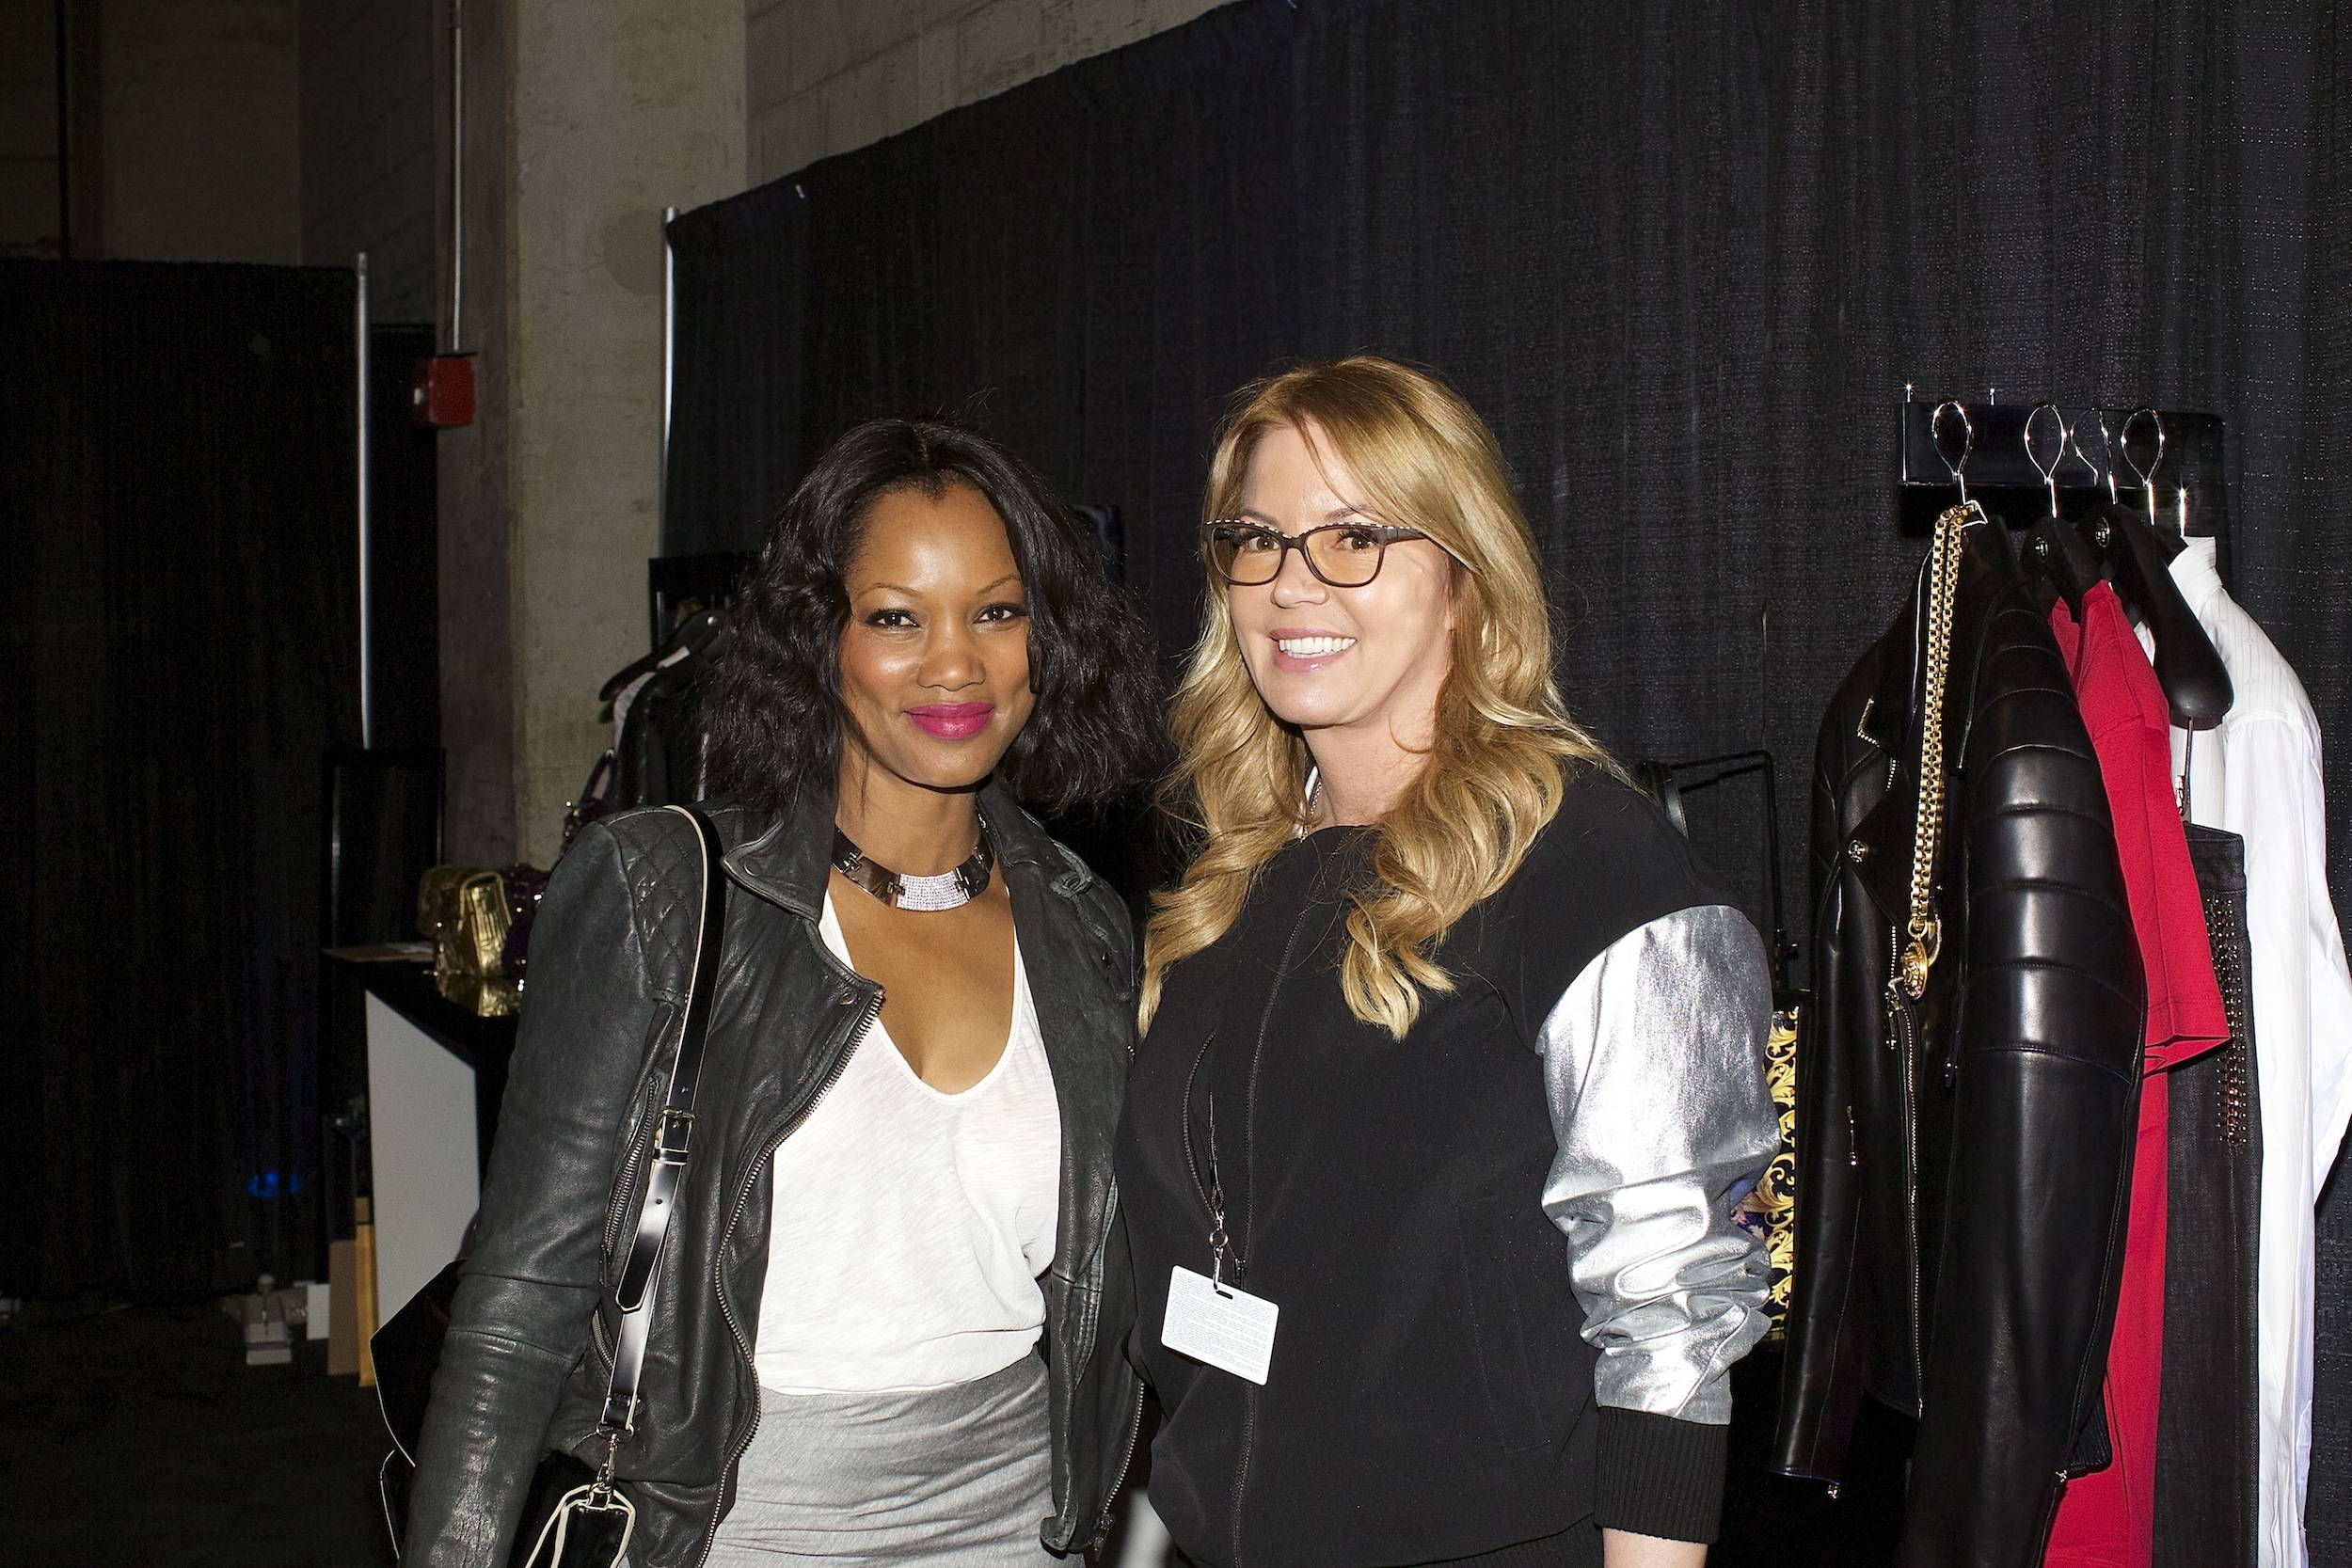 Garcelle Beauvais and Jeanie Buss at the Versace Shopping Event benefiting the Lakers Youth Foundation & STAPLES Center Foundation